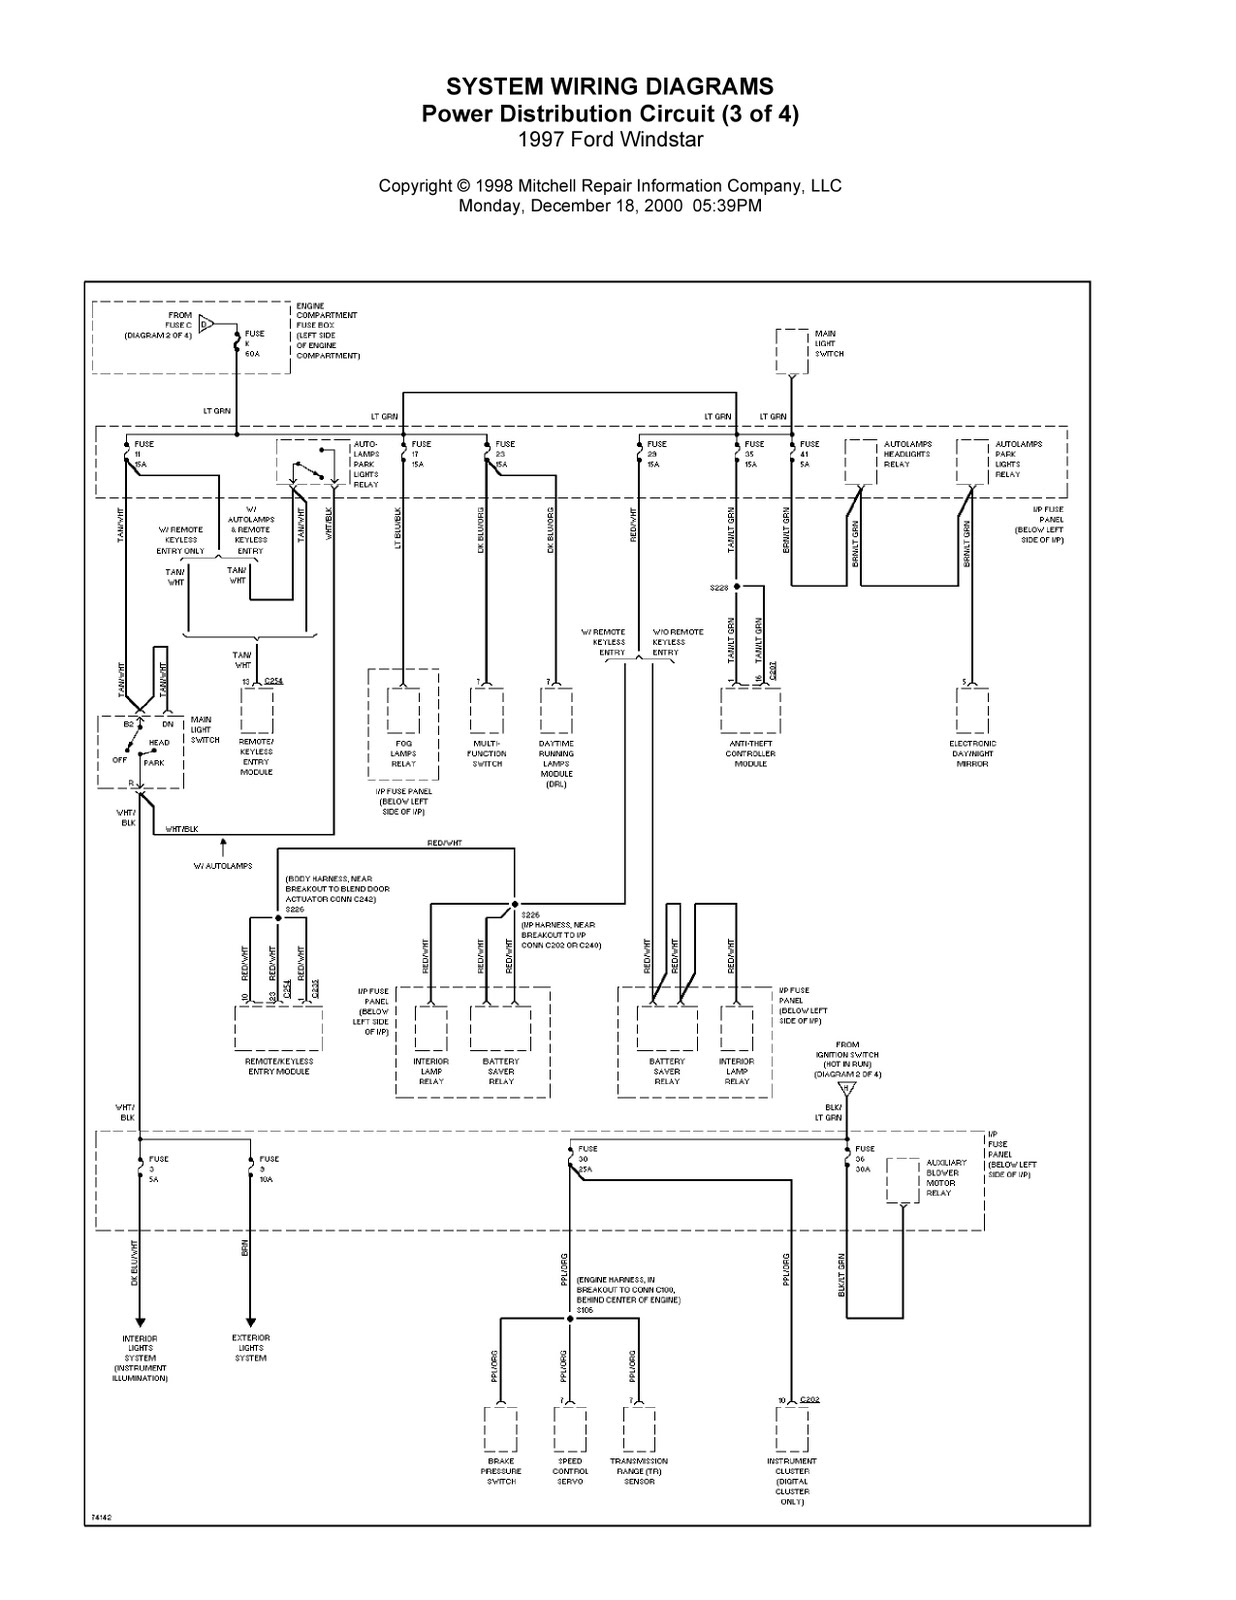 Complete System Wiring Diagrams 1997 Ford Windstar Diagram For 03 01 Fuse